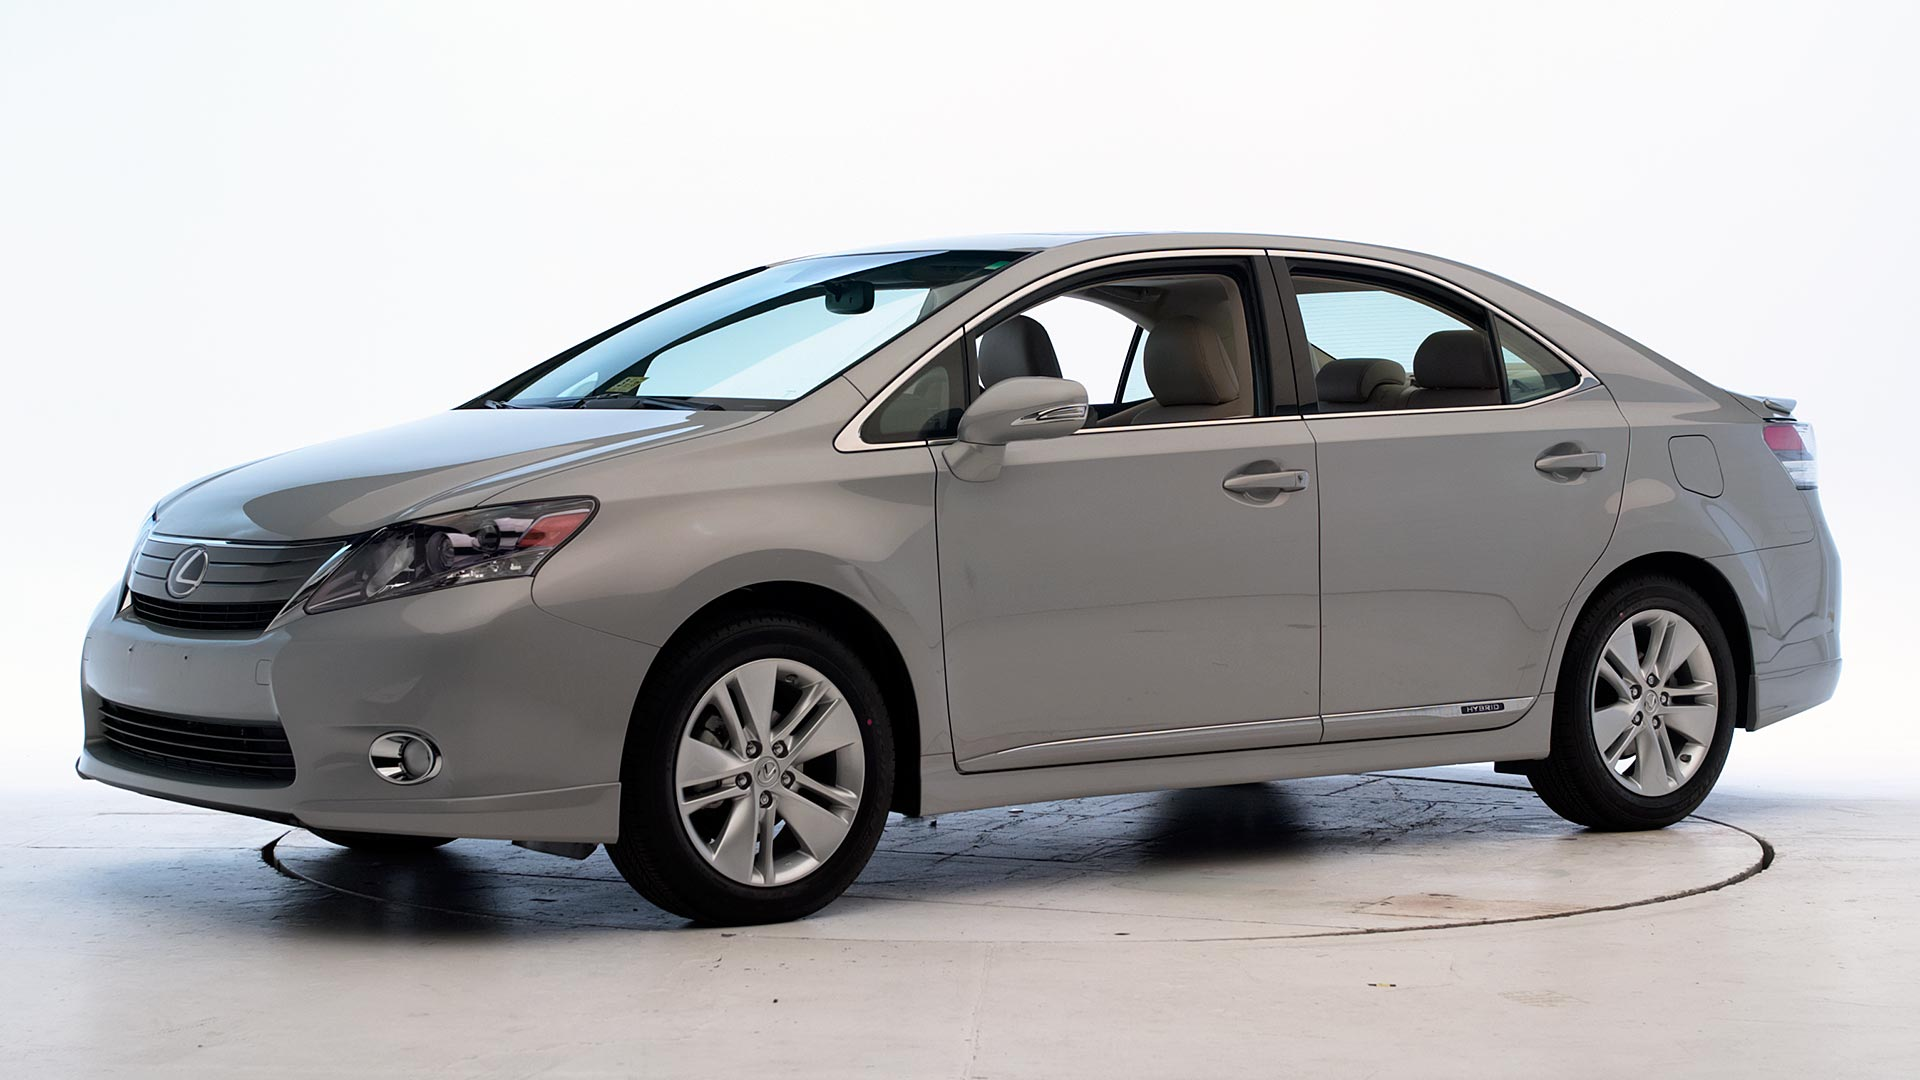 2012 Lexus HS 250h 4-door sedan